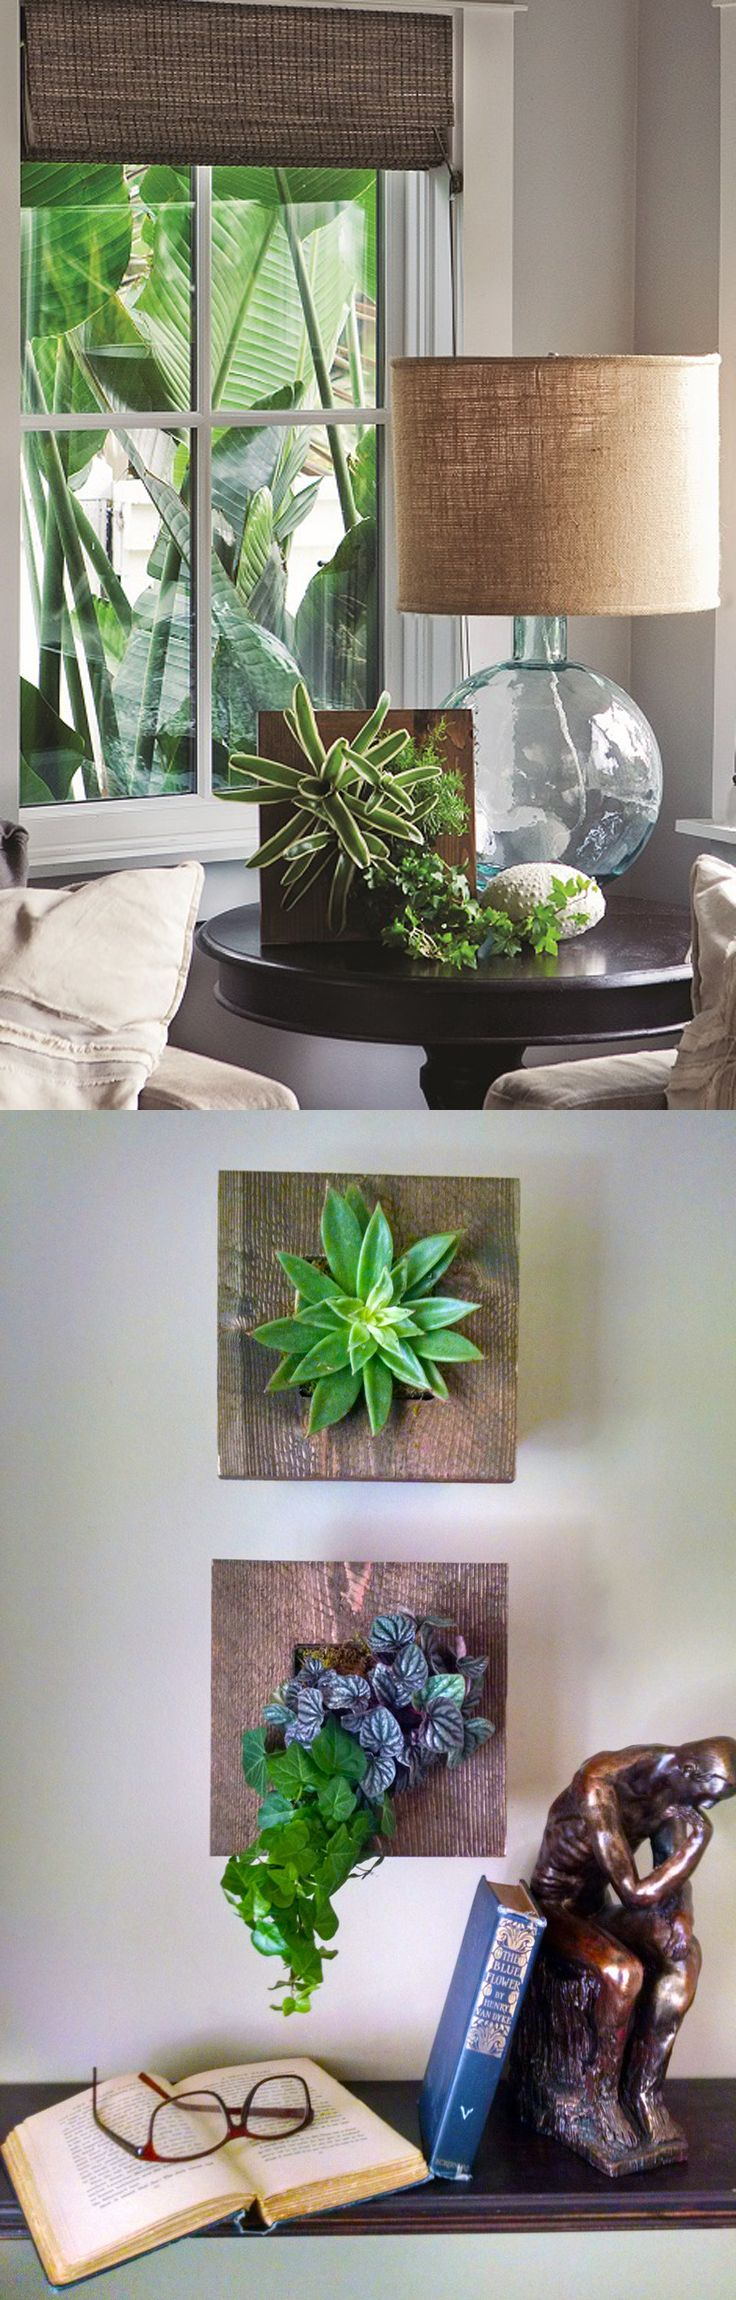 best 25 wall planters ideas on pinterest plants indoor apartment plants and herb wall. Black Bedroom Furniture Sets. Home Design Ideas